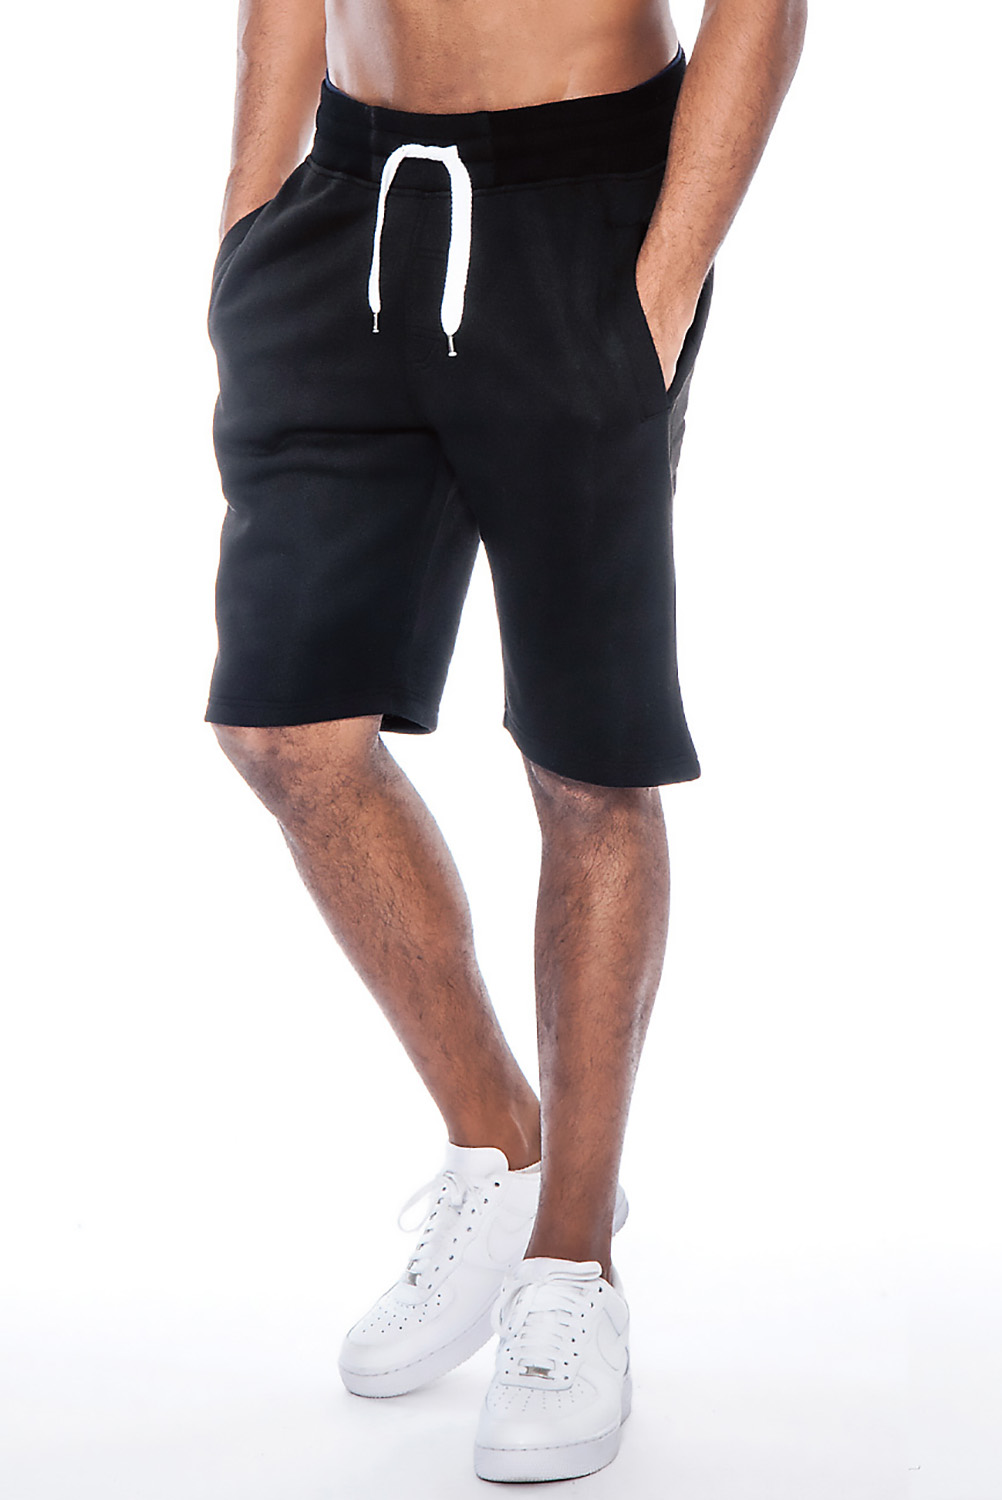 business casual men shorts photo - 1